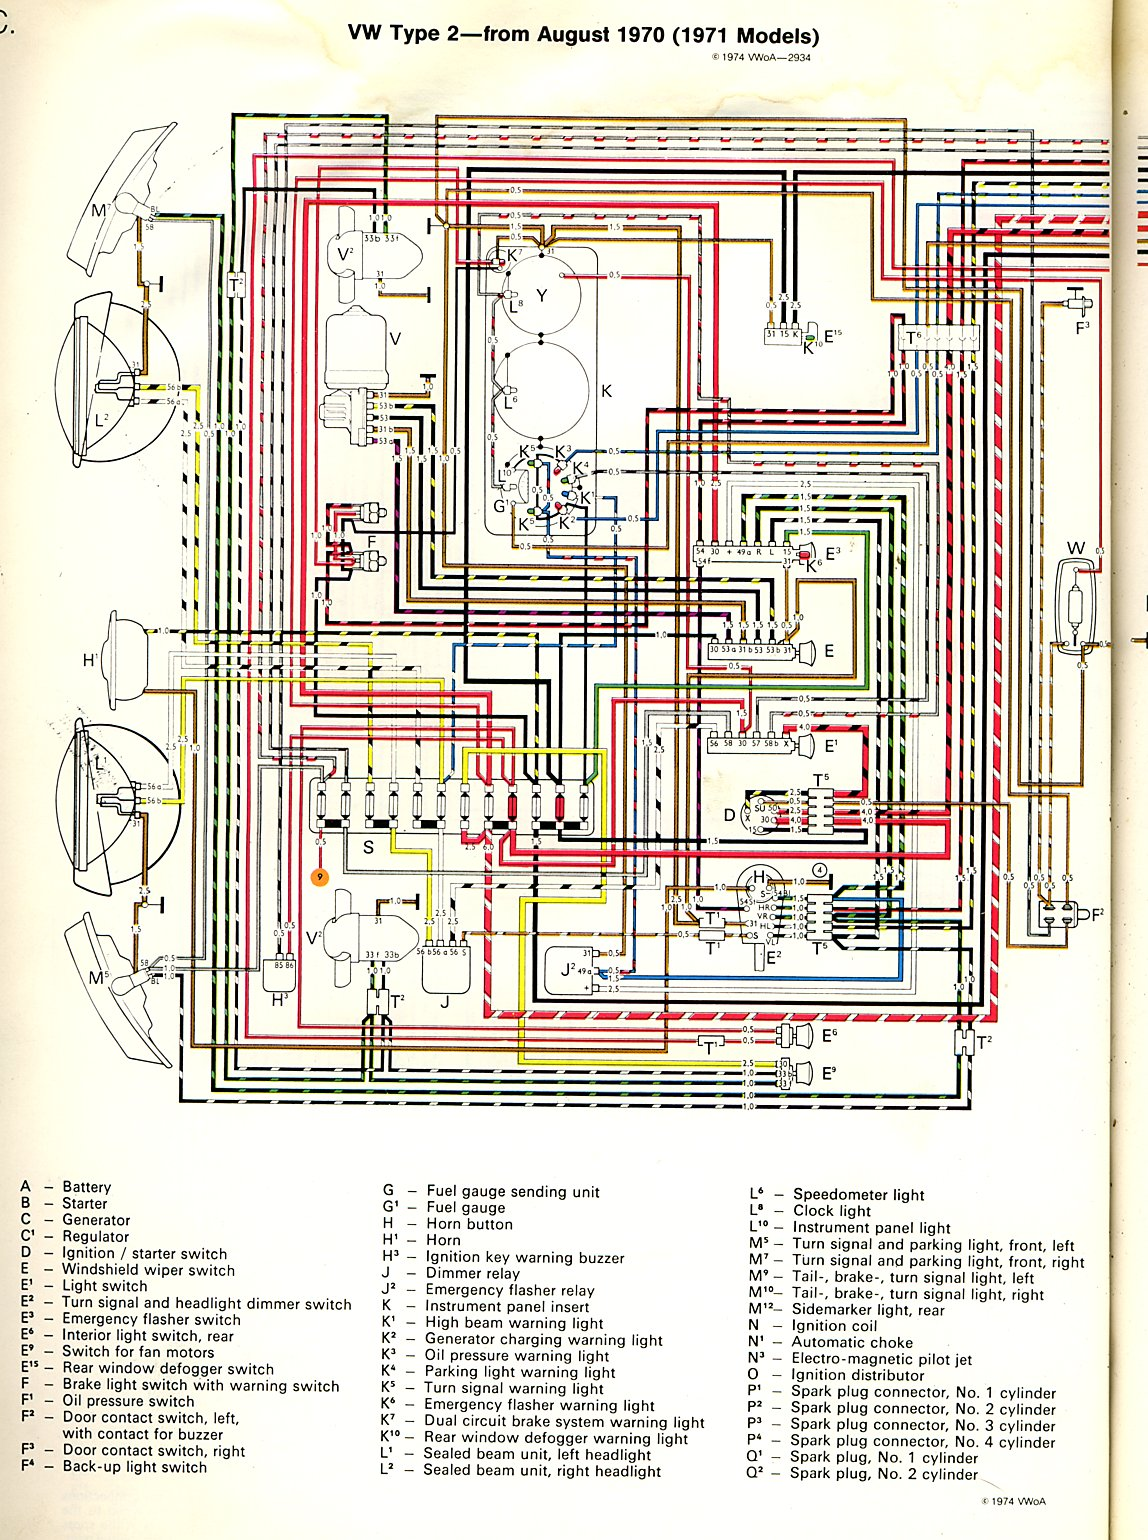 1970 vw fuse diagram online schematics diagram rh delvato co 2000 VW Jetta  Fuse Box Diagram